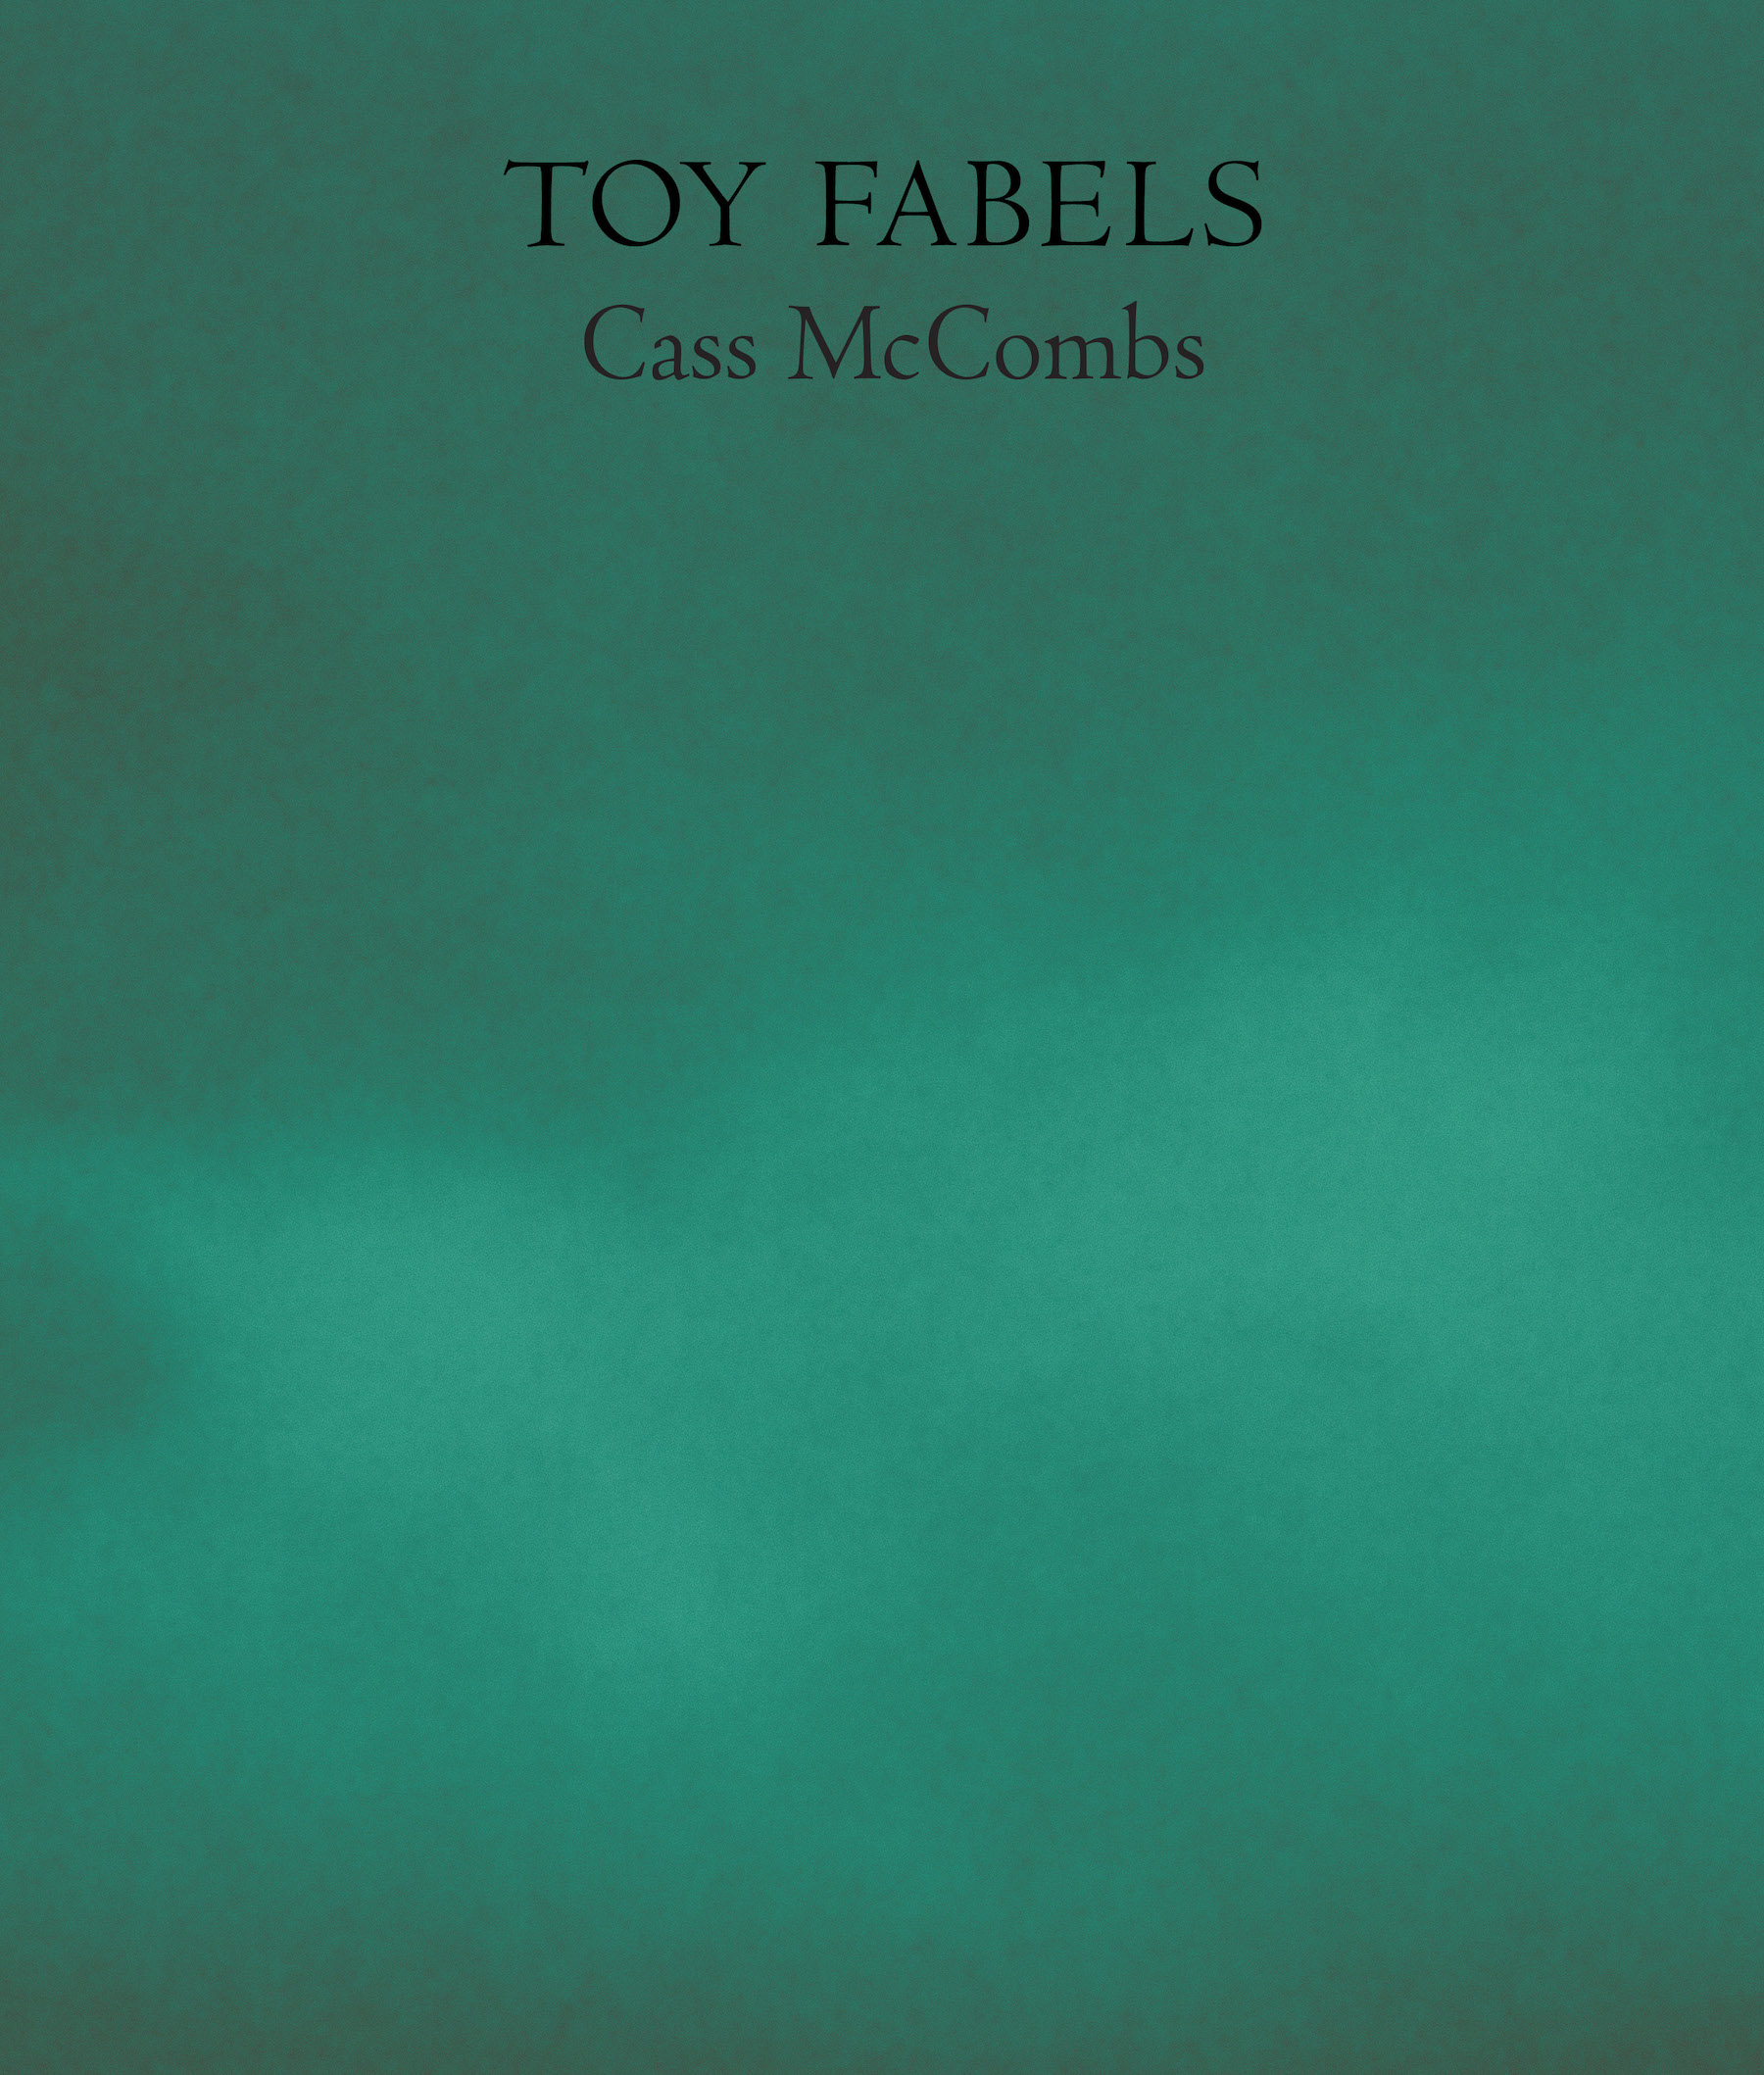 ToyFabels_cover.jpg